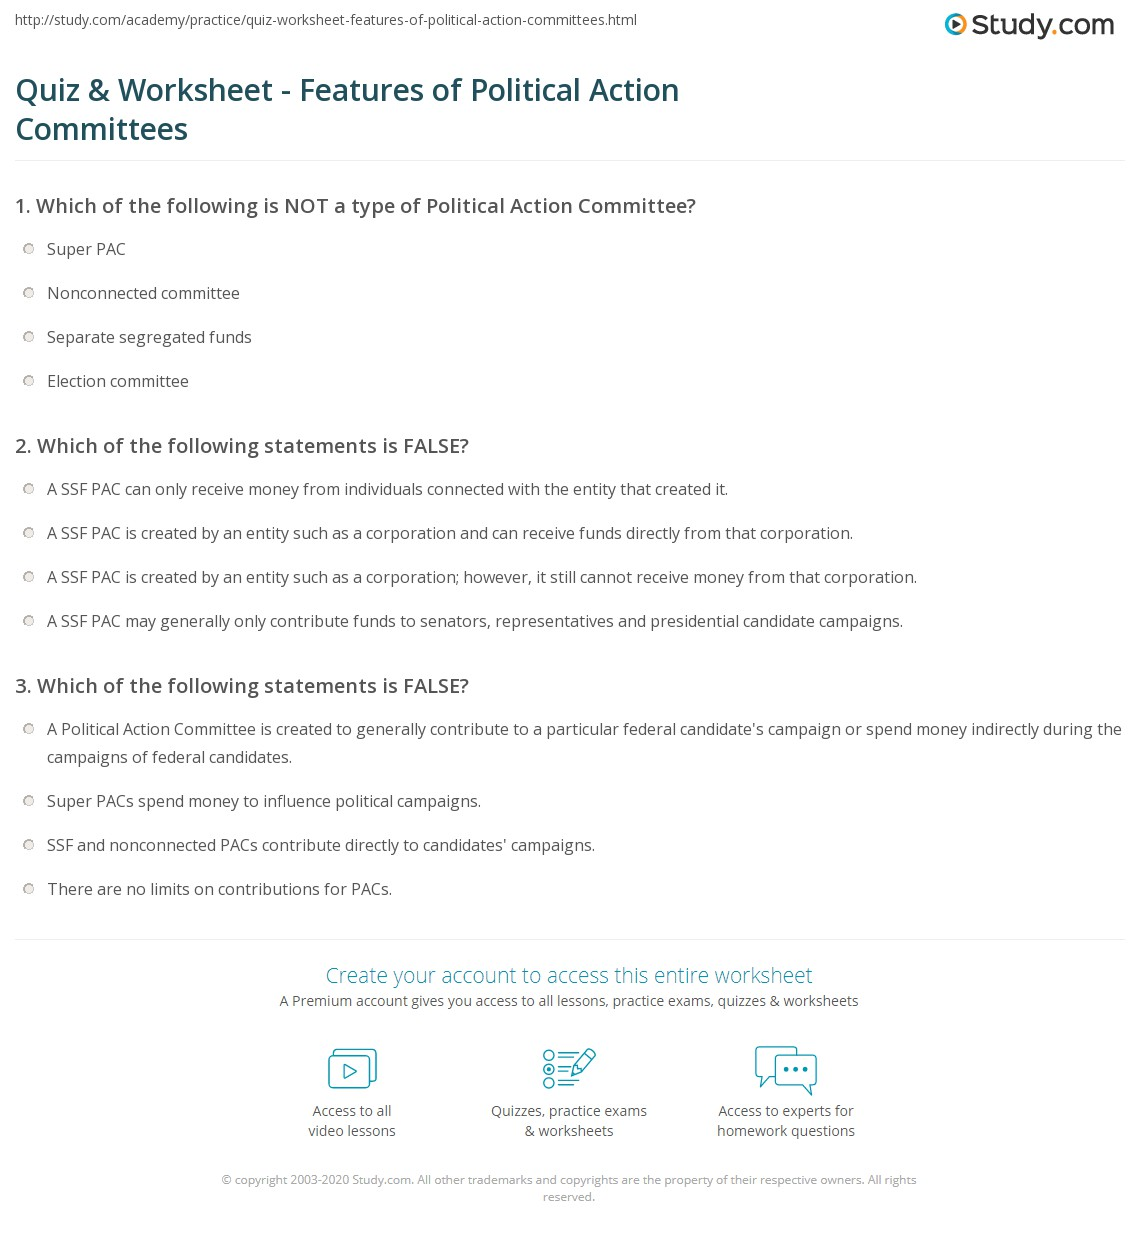 an introduction to the history of political action committees Our history the national association of business political action committees (nabpac) was founded in 1977 and is the sole national organization dedicated to promoting, defending and professionalizing pacs and political action professionals.